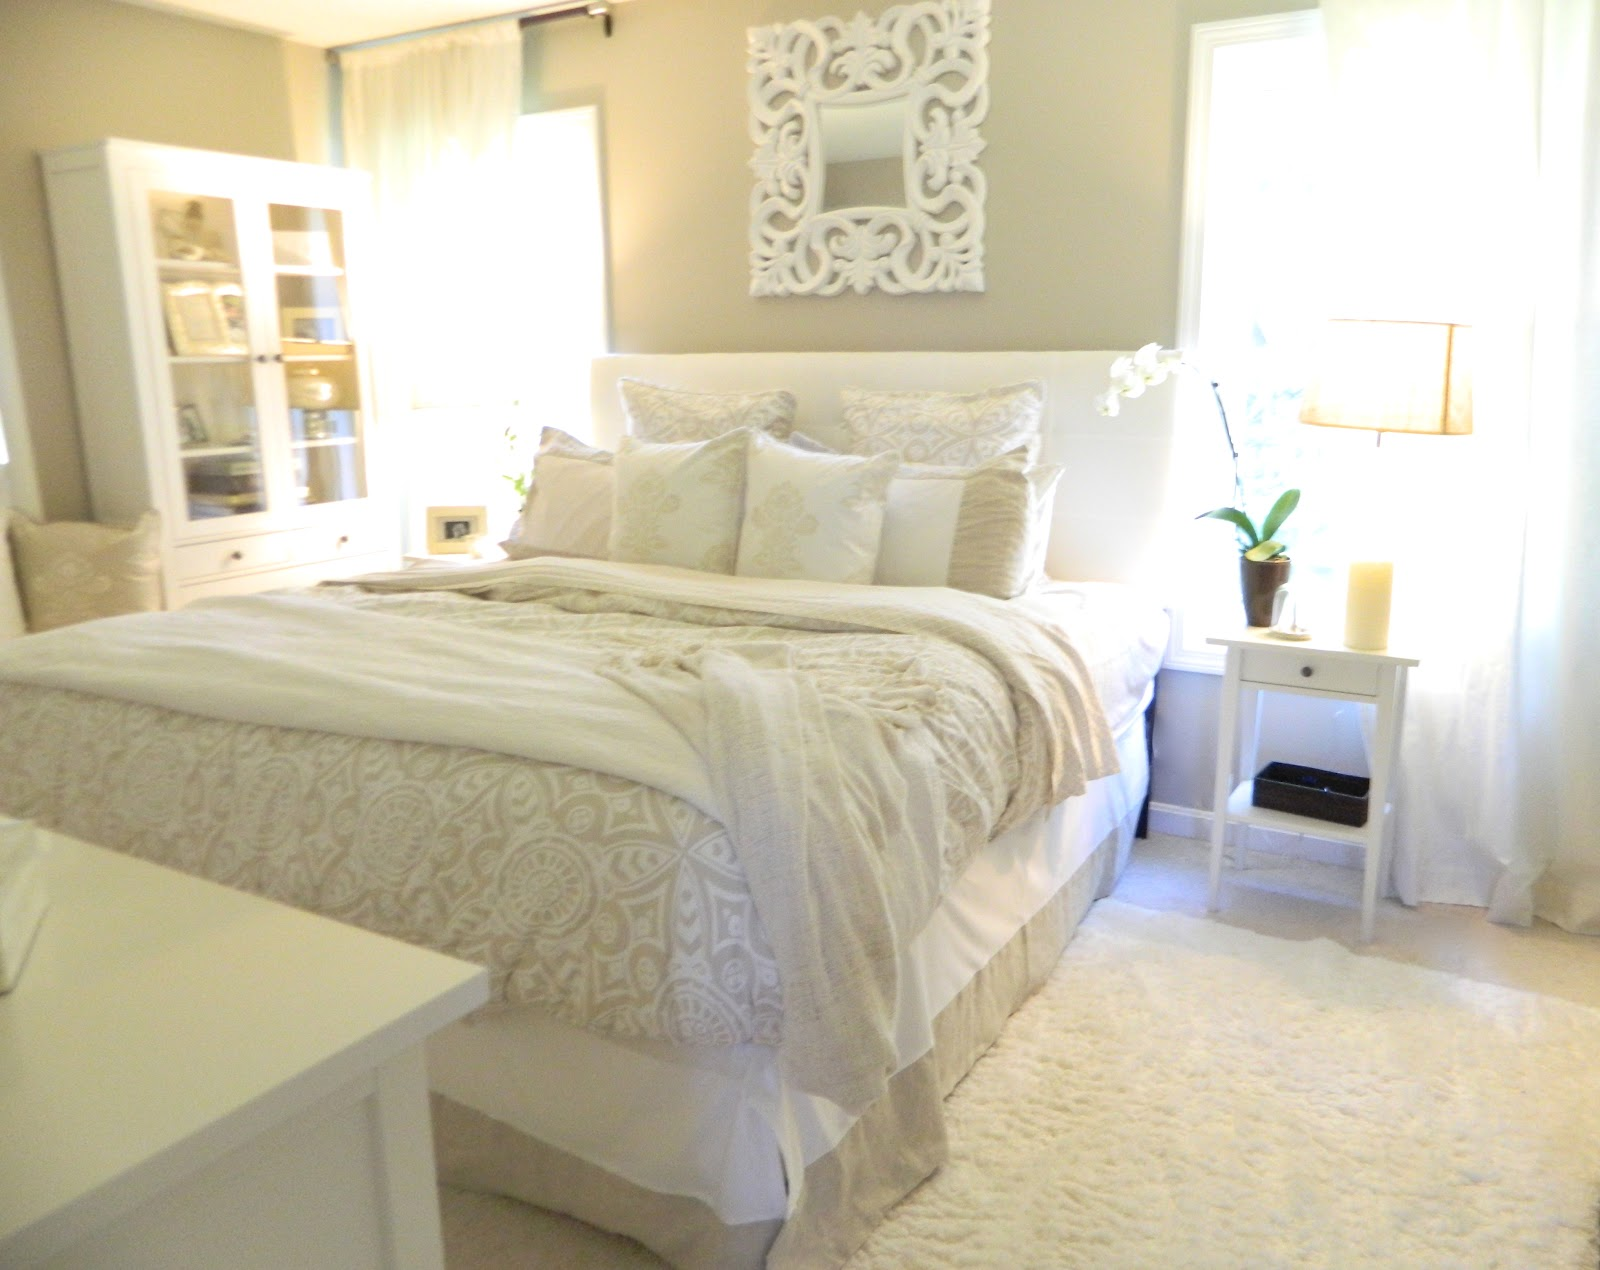 All White Bedrooms Peaceful Home Decor Our Romantic And Peaceful